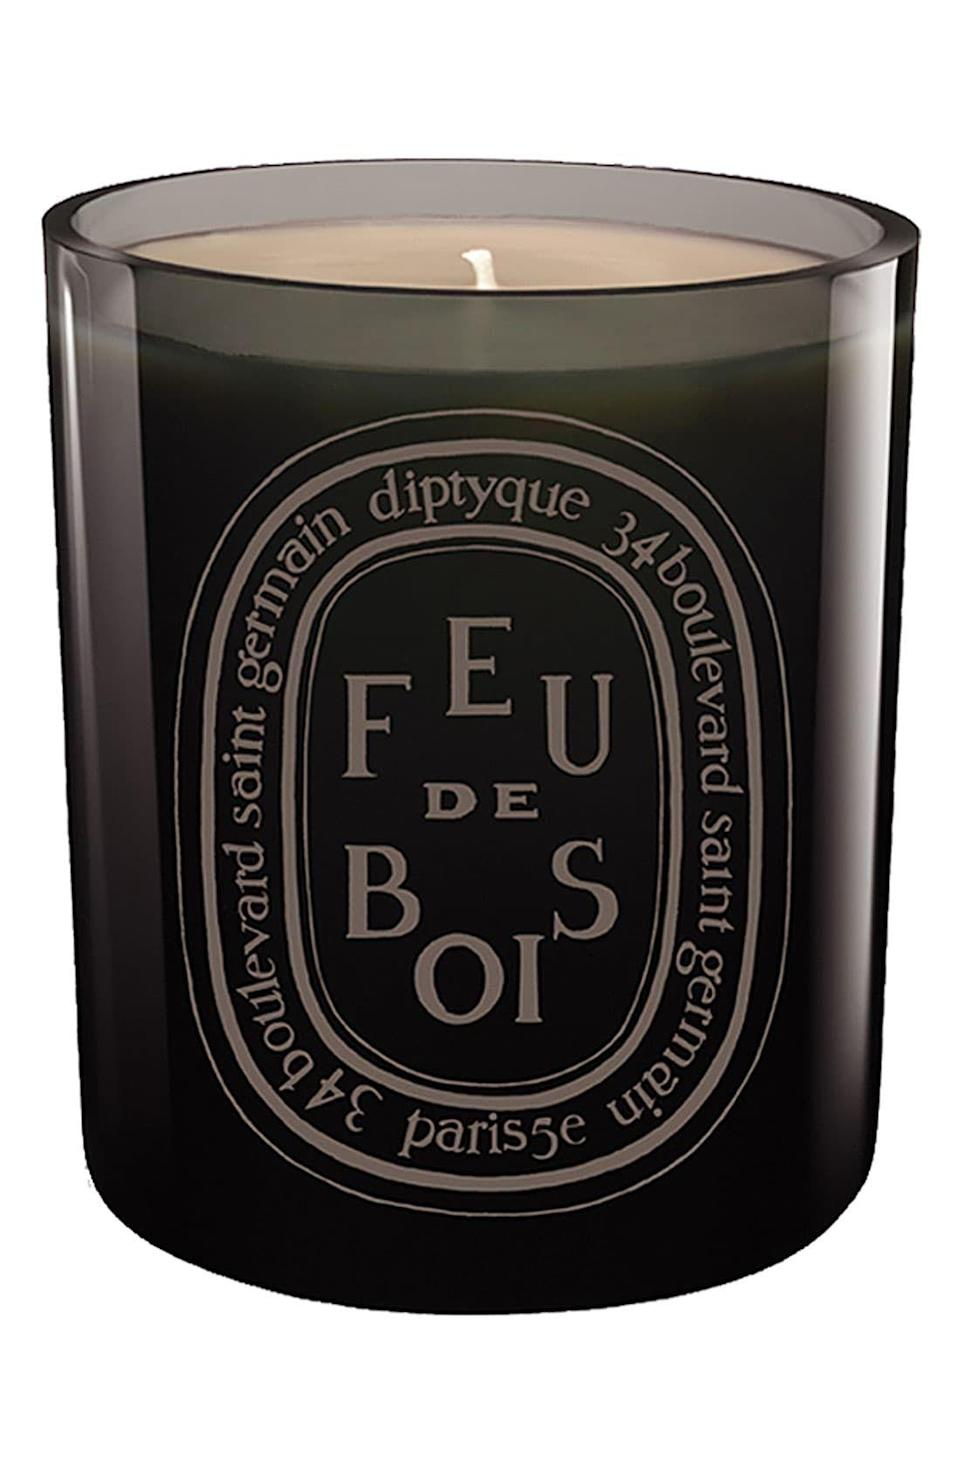 """<p><strong>Diptyque </strong></p><p>nordstrom.com</p><p><strong>$98.00</strong></p><p><a href=""""https://go.redirectingat.com?id=74968X1596630&url=https%3A%2F%2Fshop.nordstrom.com%2Fs%2Fdiptyque-feu-de-bois-wood-fire-grey-scented-candle%2F3228197&sref=https%3A%2F%2Fwww.townandcountrymag.com%2Fleisure%2Fg12237114%2Fbest-thanksgiving-hostess-gift-ideas%2F"""" rel=""""nofollow noopener"""" target=""""_blank"""" data-ylk=""""slk:Shop Now"""" class=""""link rapid-noclick-resp"""">Shop Now</a></p><p>The ultimate sign of gratitude is a lovely seasonal candle that will make your host or hostess feel stylish the minute they strike a match.</p>"""